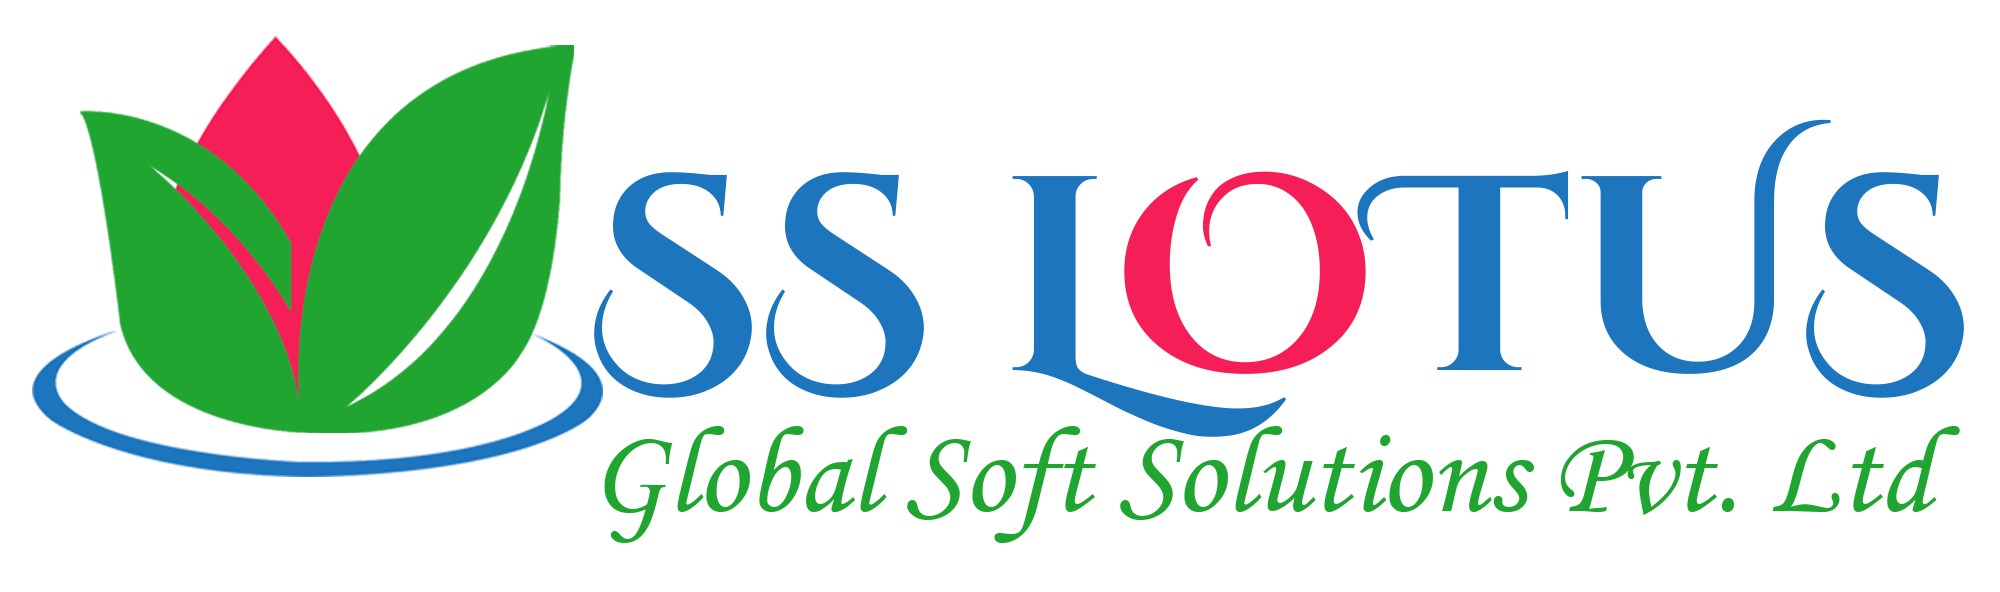 SS Lotus Global Soft Solutions Pvt.Ltd - Web Development company logo